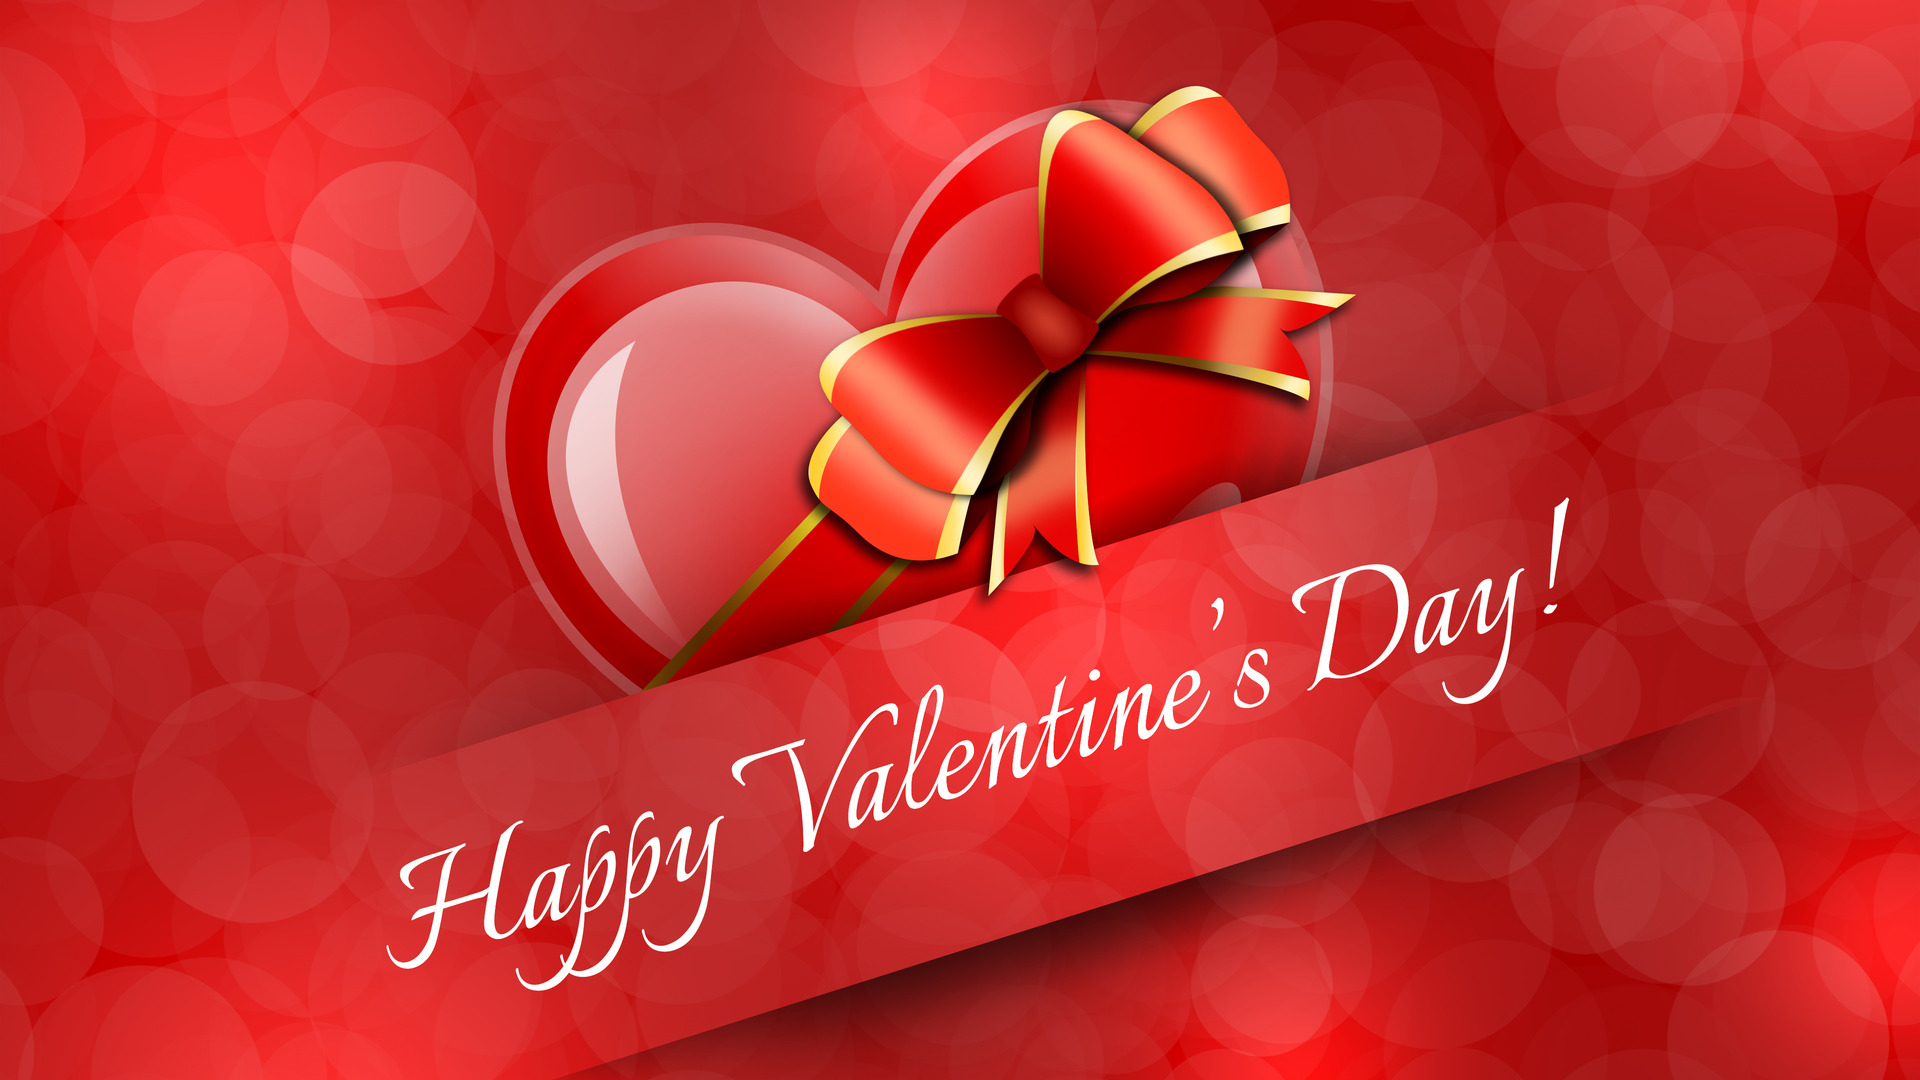 best 3d happy valentines day wallpapers images download